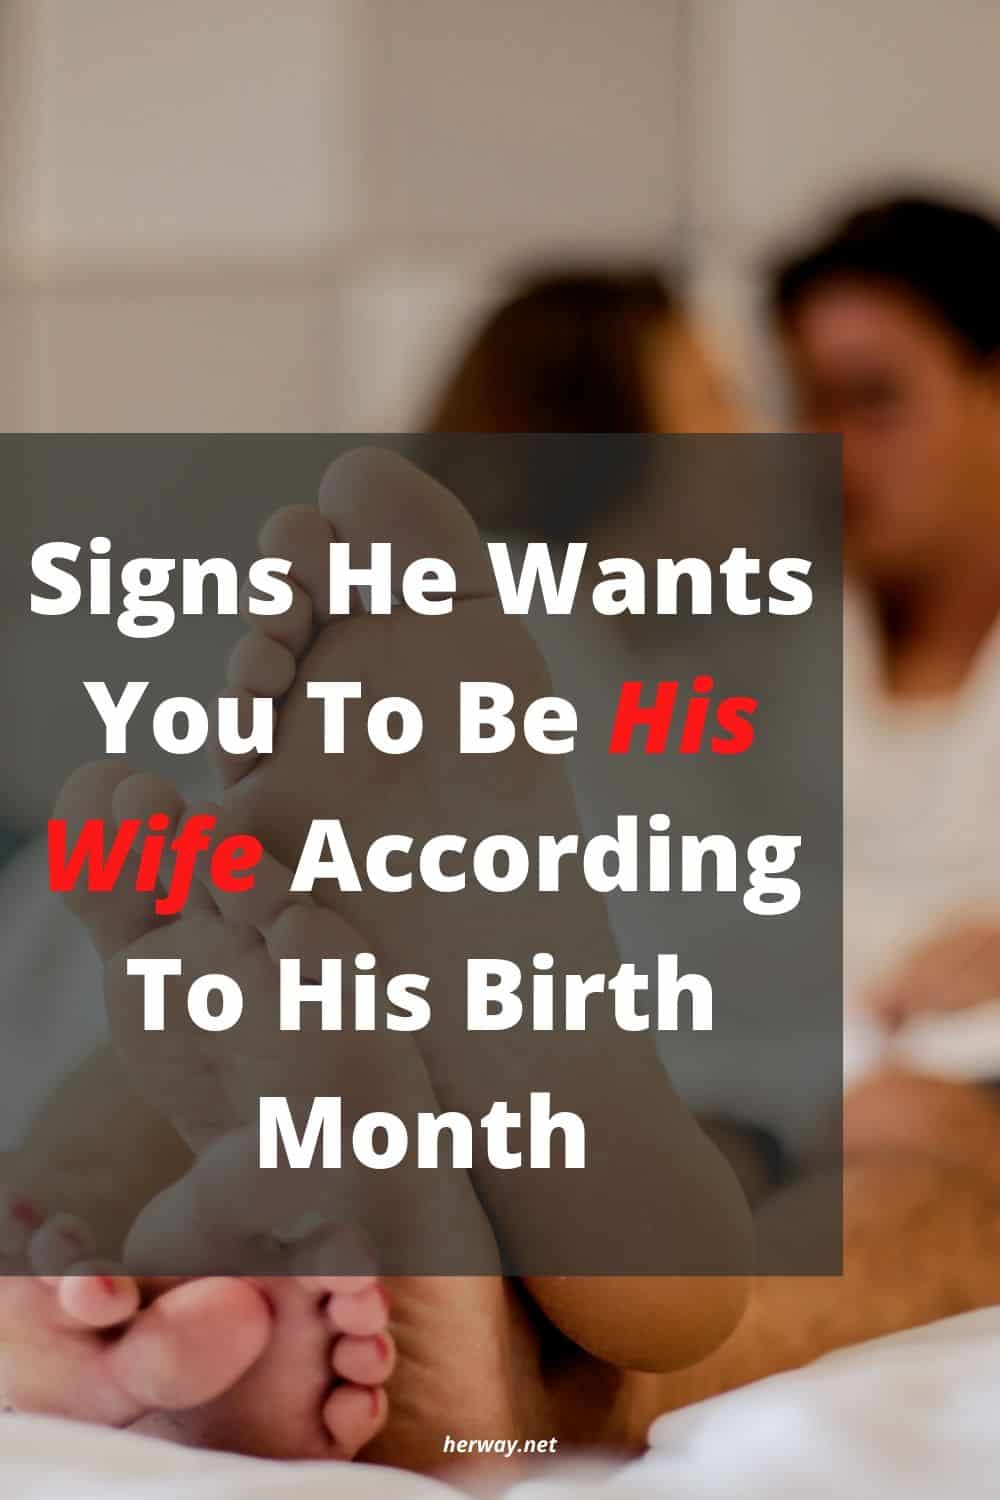 Signs He Wants You To Be His Wife According To His Birth Month